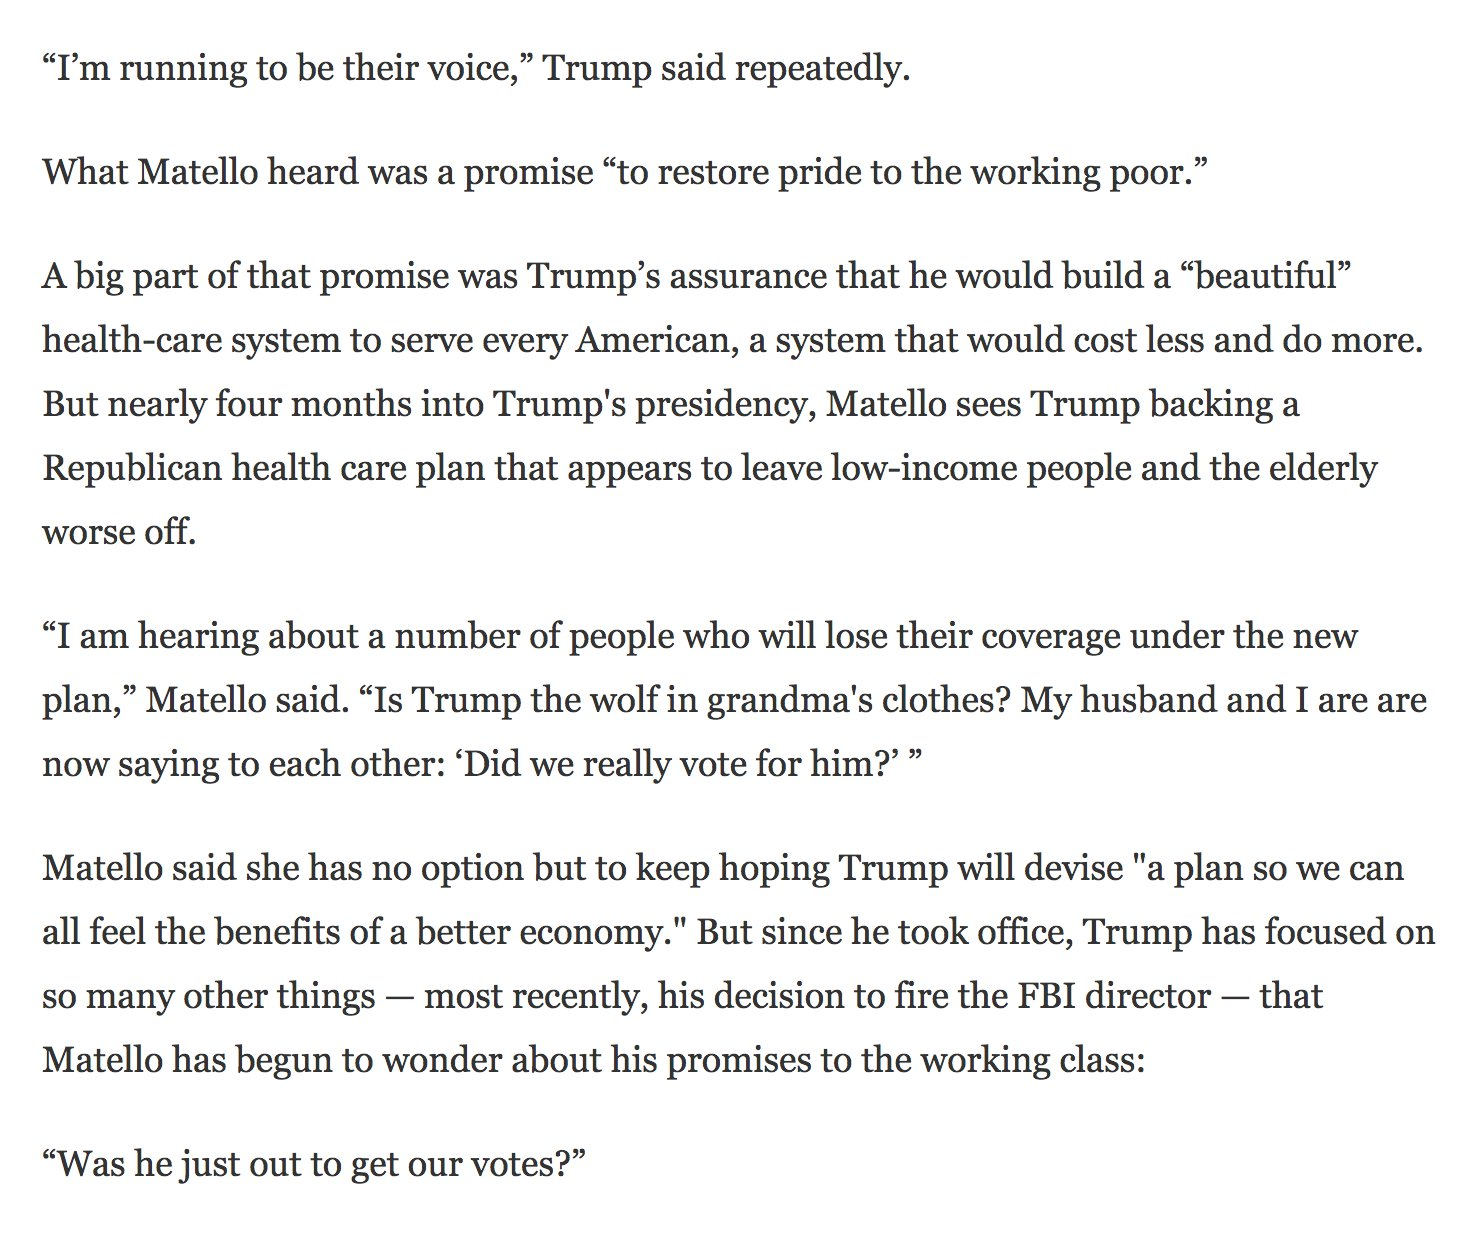 """""""Is Trump the wolf in grandma's clothes? … 'Did we really vote for him?'"""" https://t.co/435rD3alue https://t.co/G2vIM1kMiu"""